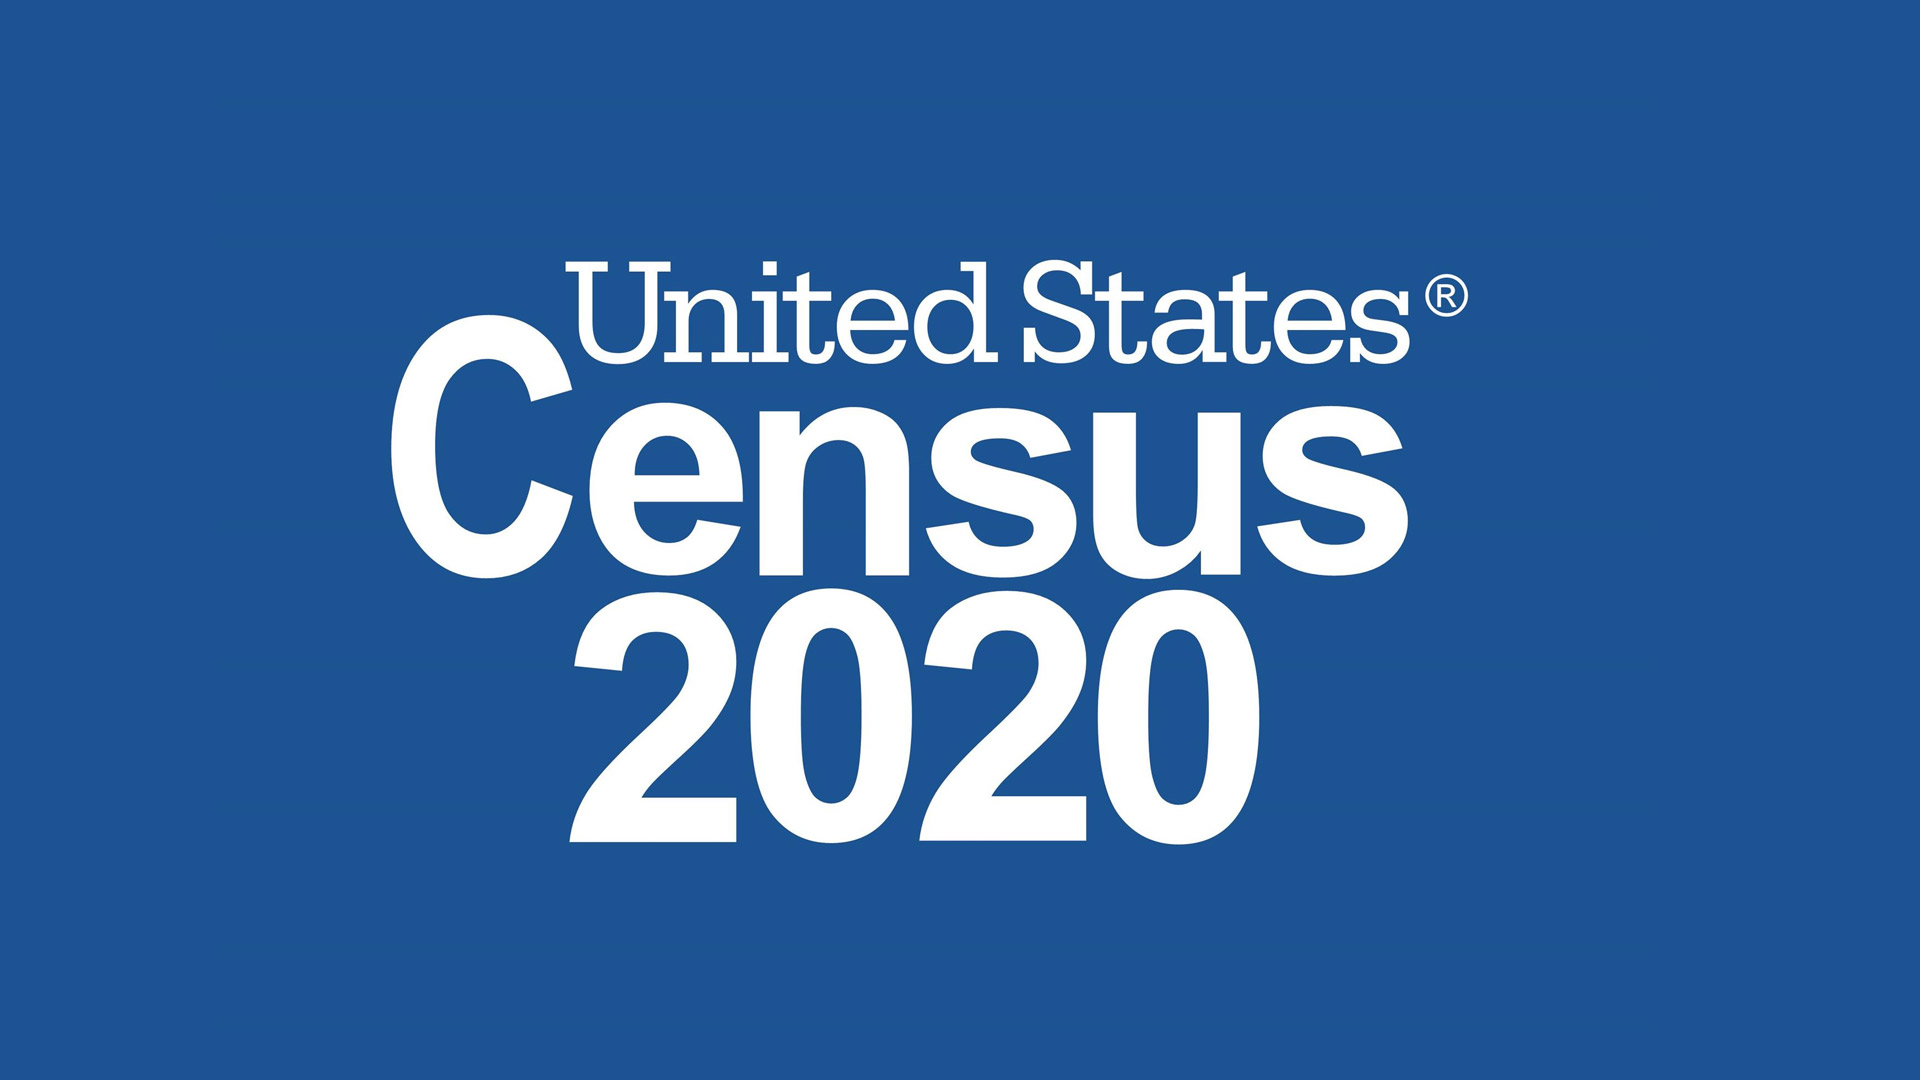 census 2020 logo with blue background